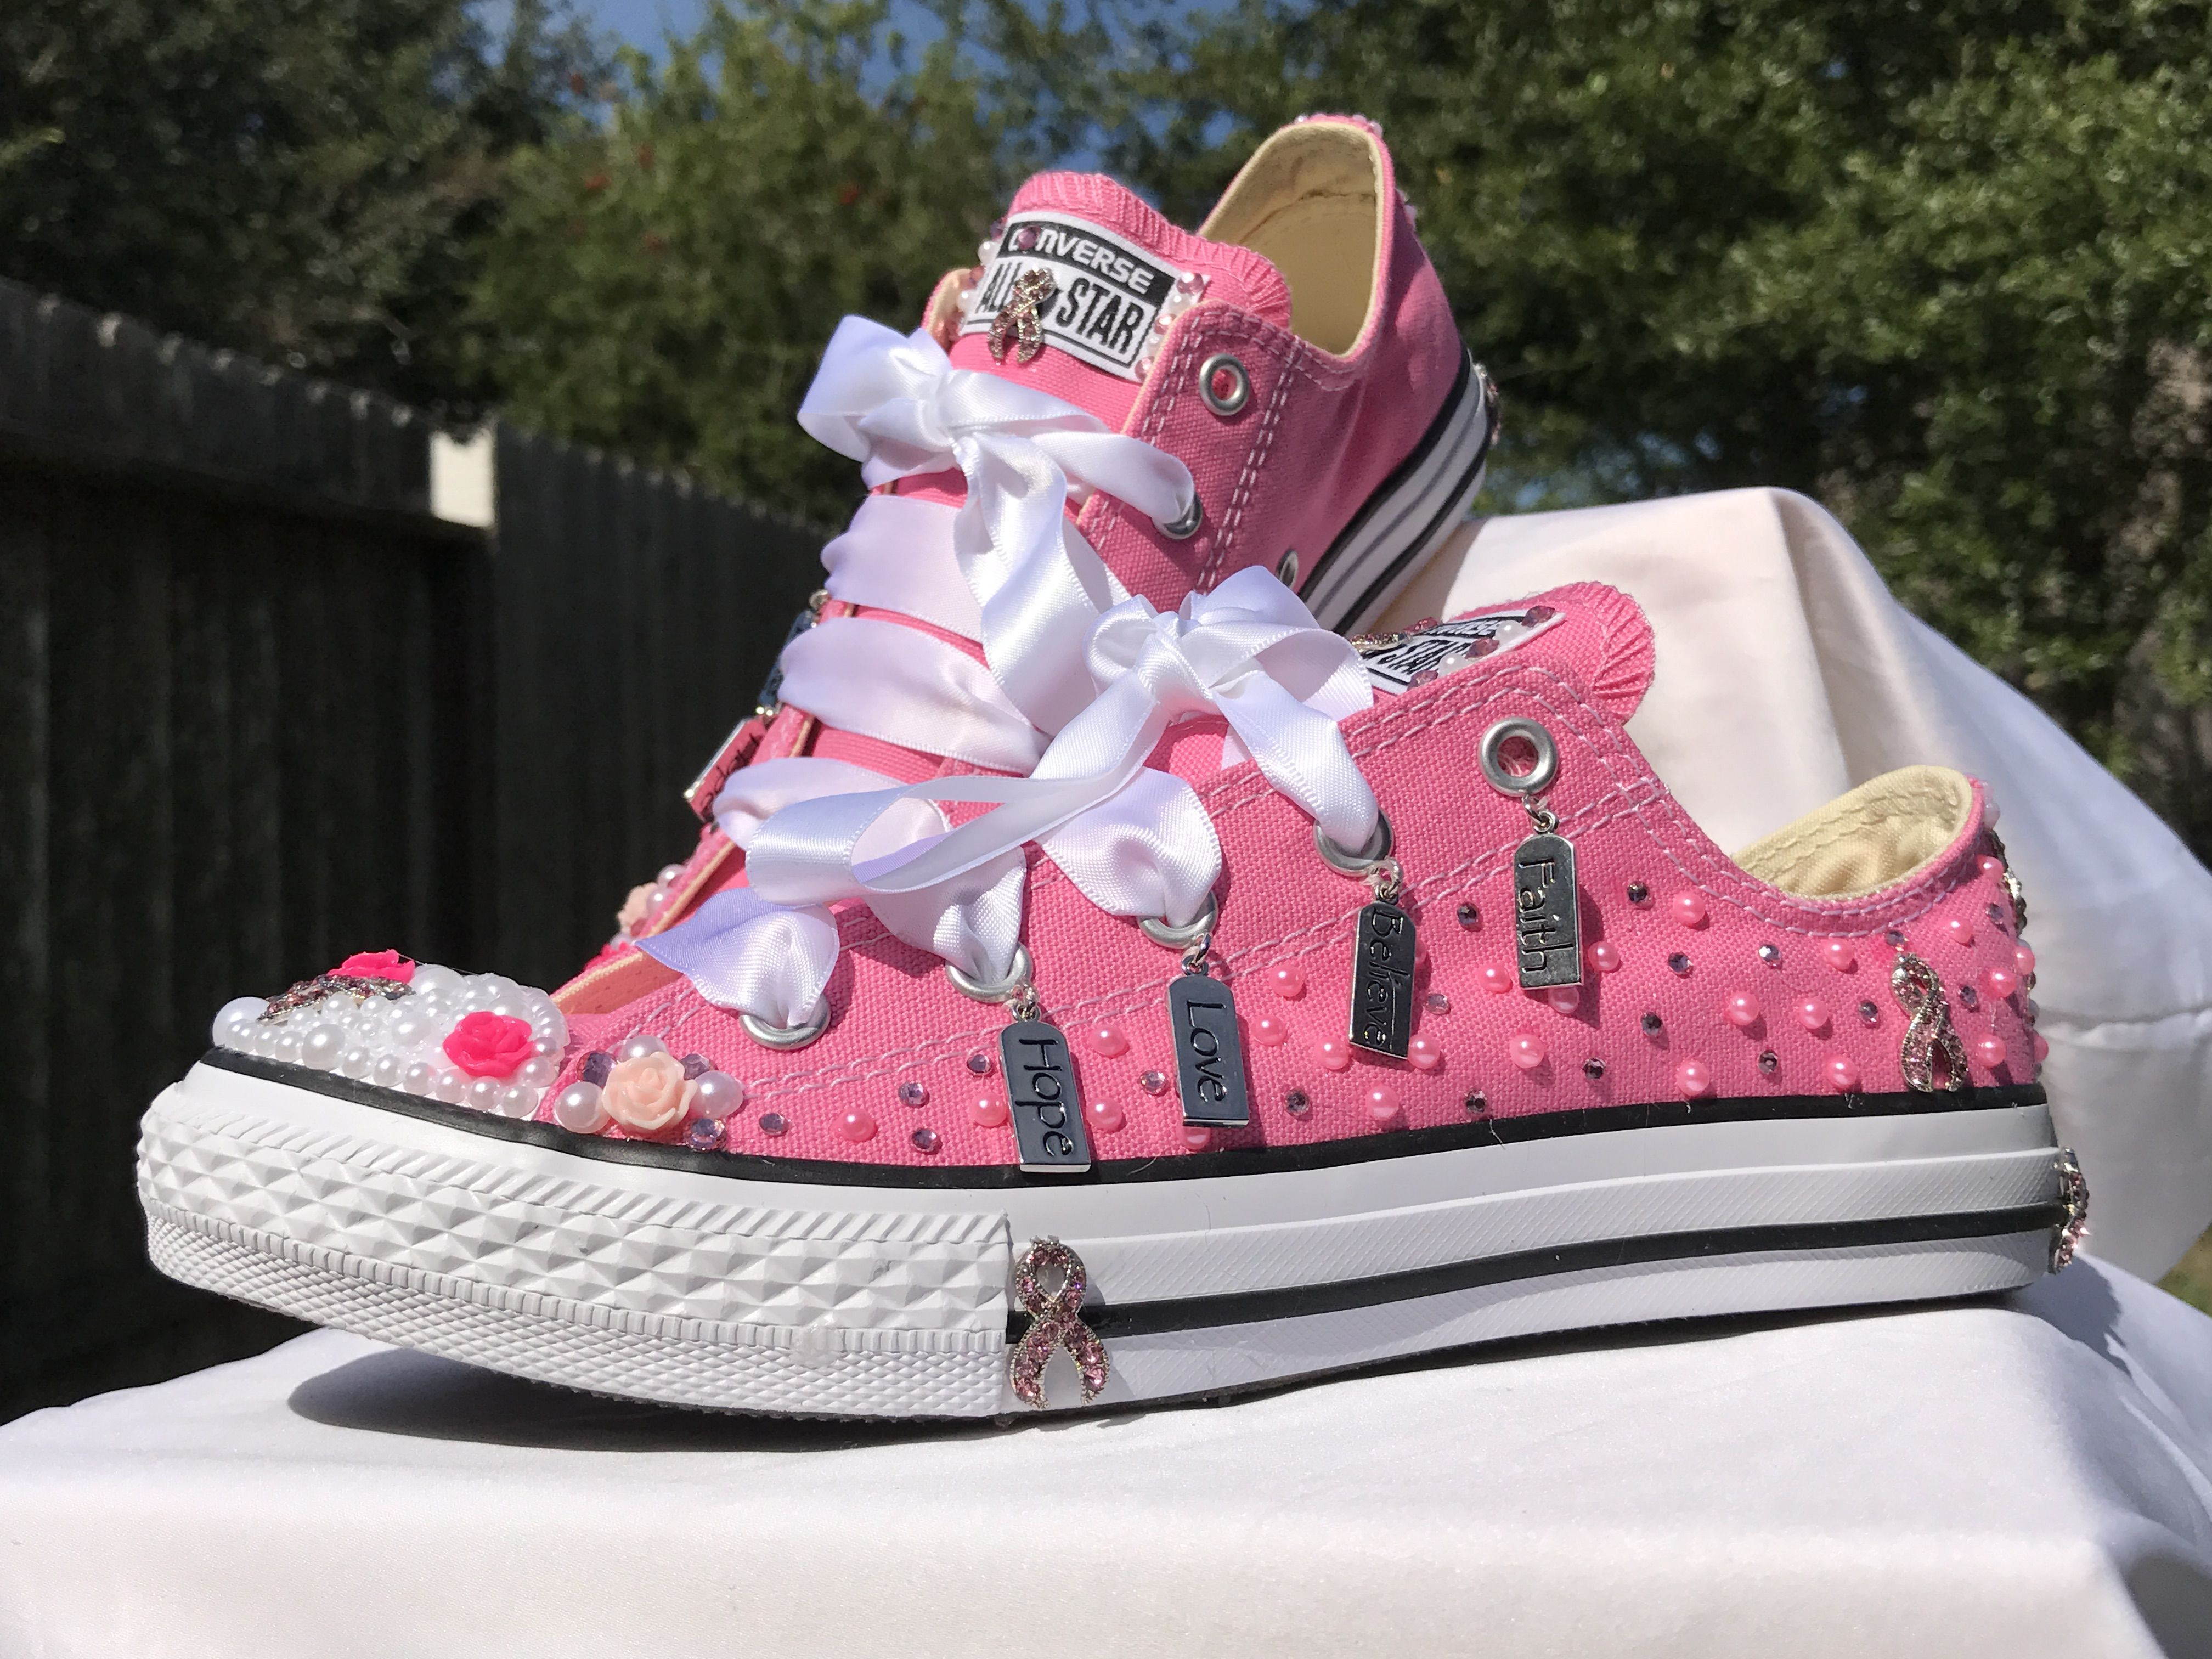 ed6afc4cbe166e Breast Cancer Custom Converse. Made to order 2 days turn around! Every  purchase a care package will be donated to MD Anderson Cancer Center.